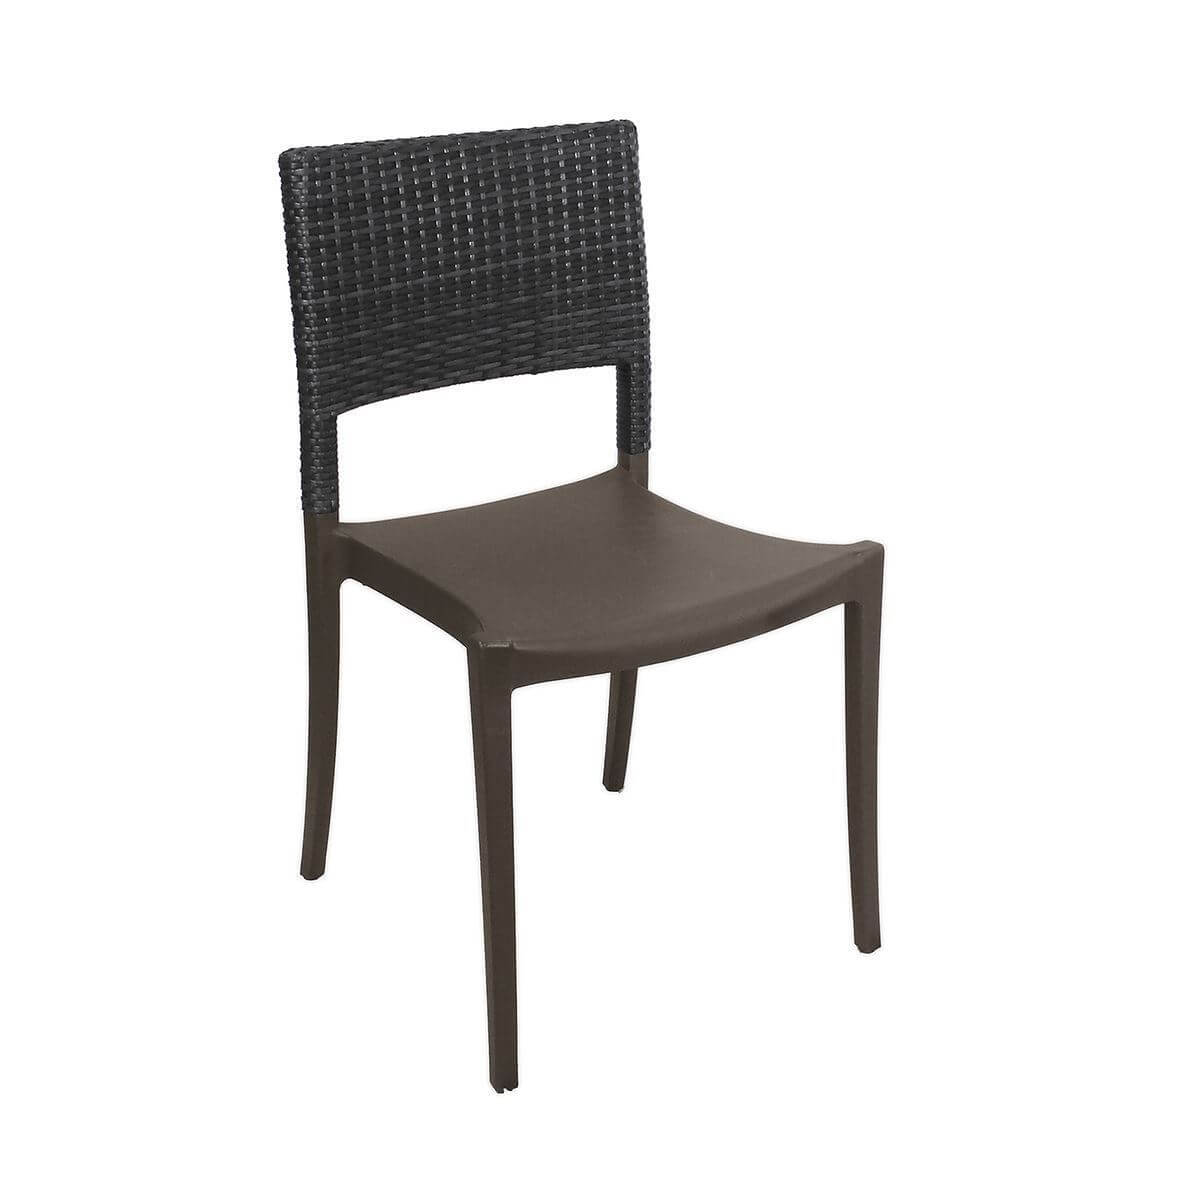 Wicker Outdoor Dining Chairs Java Stacking Outdoor Dining Chair Air Modeled Plastic With Wicker Back 10 Lbs